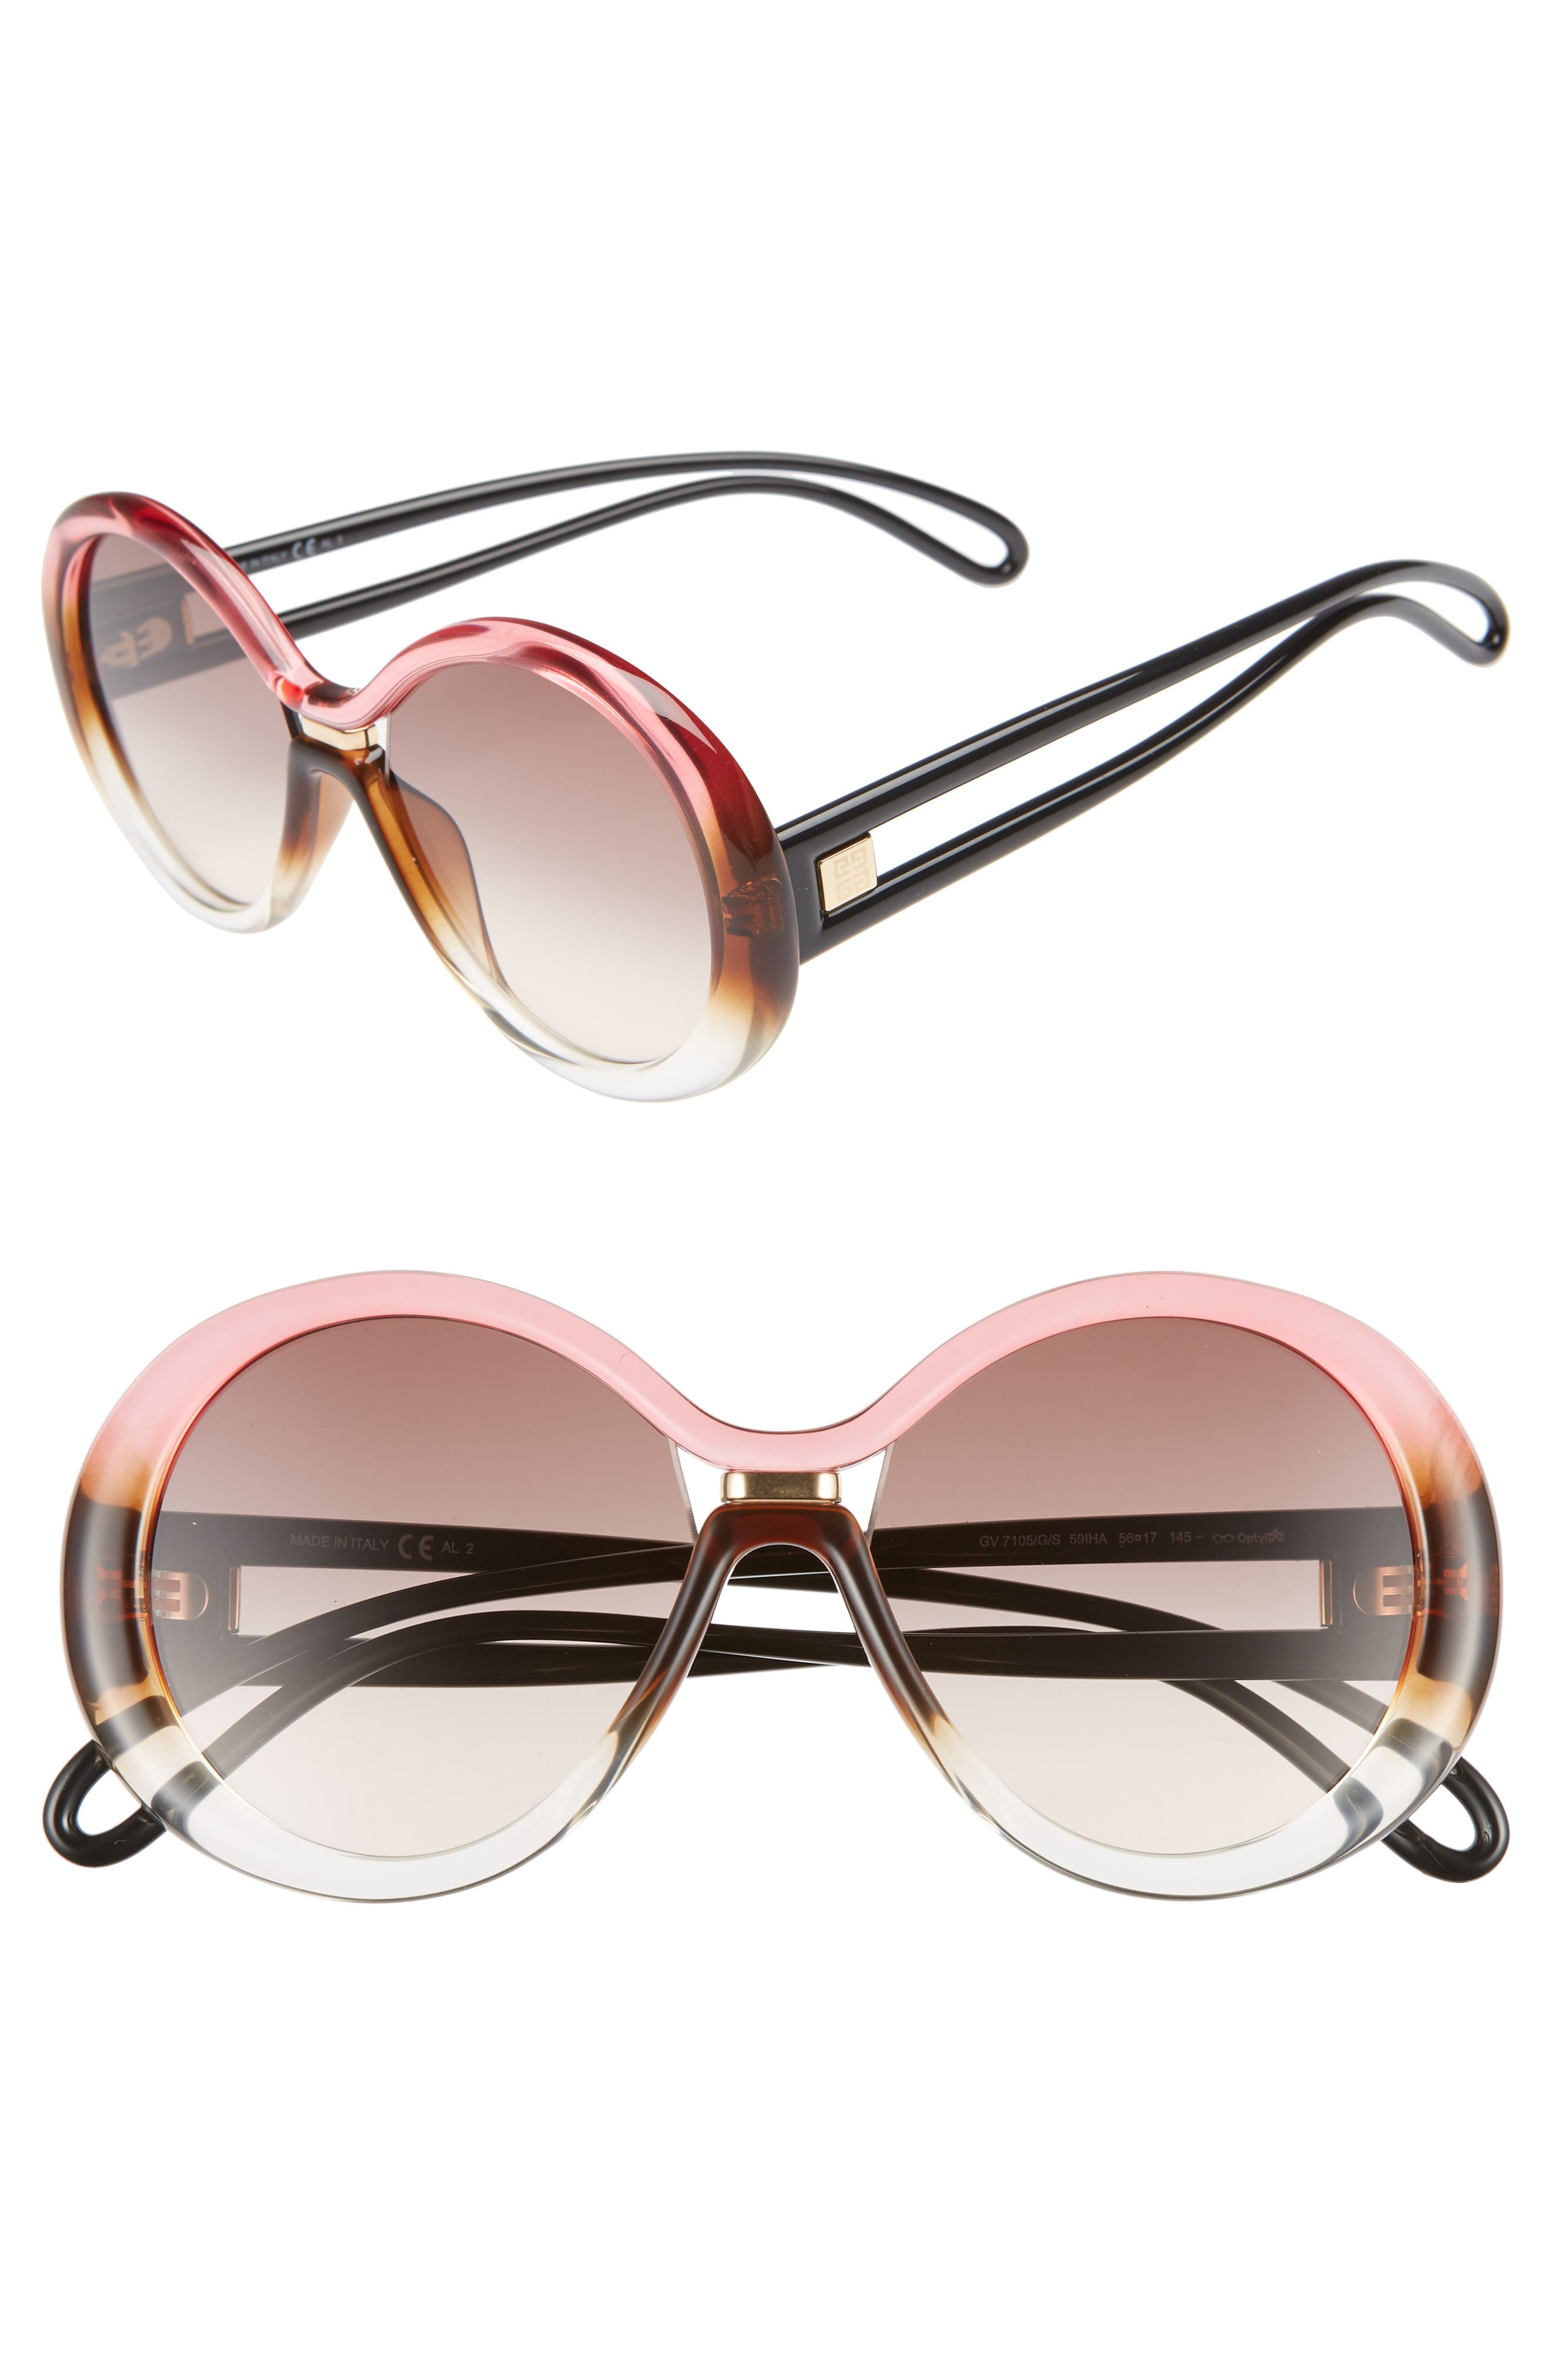 Givenchy 5m Round Sunglasses -